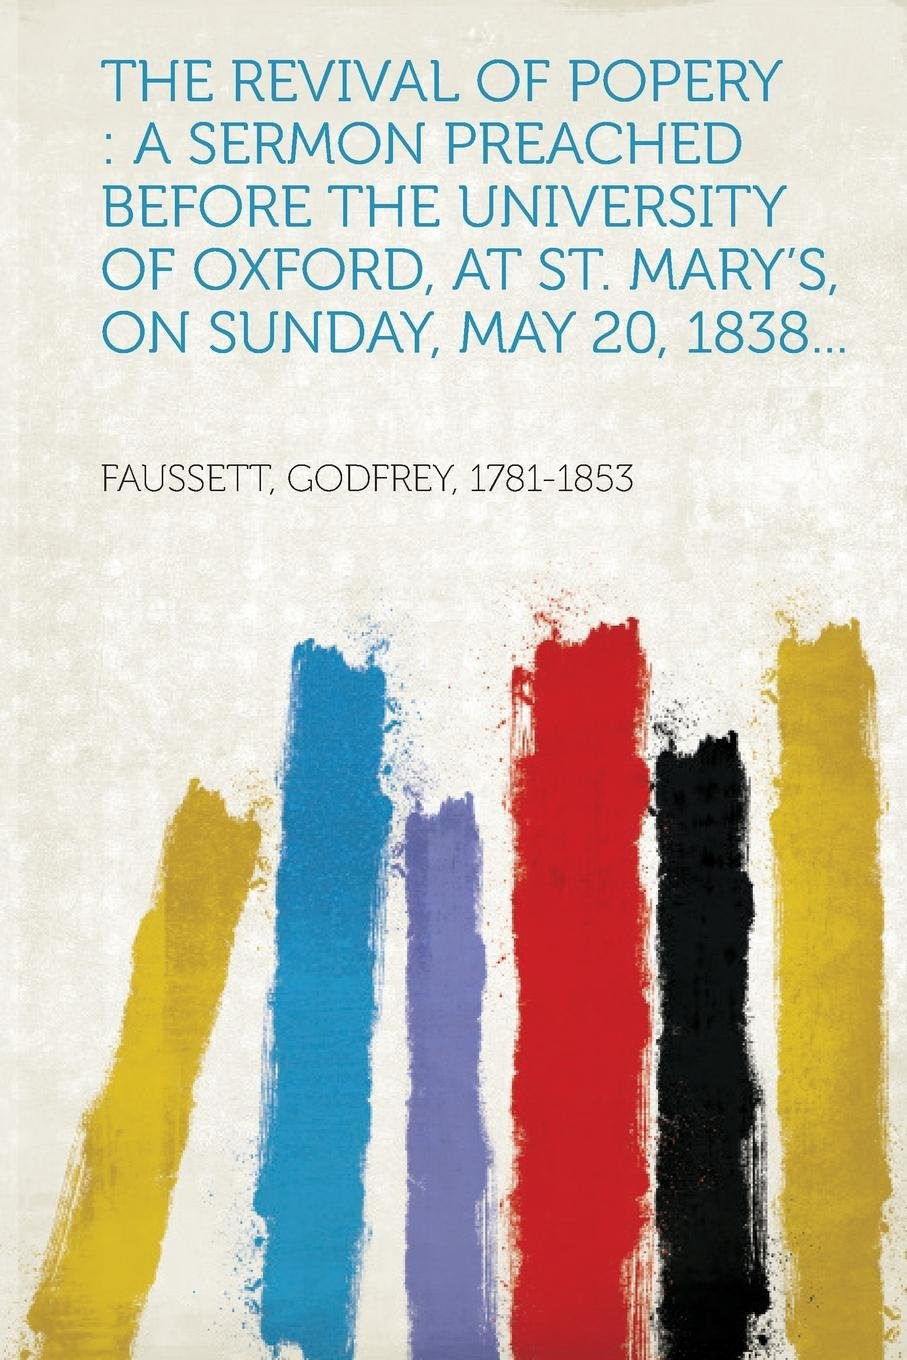 The Revival of Popery: A Sermon Preached Before the University of Oxford, at St. Mary's, on Sunday, May 20, 1838... pdf epub